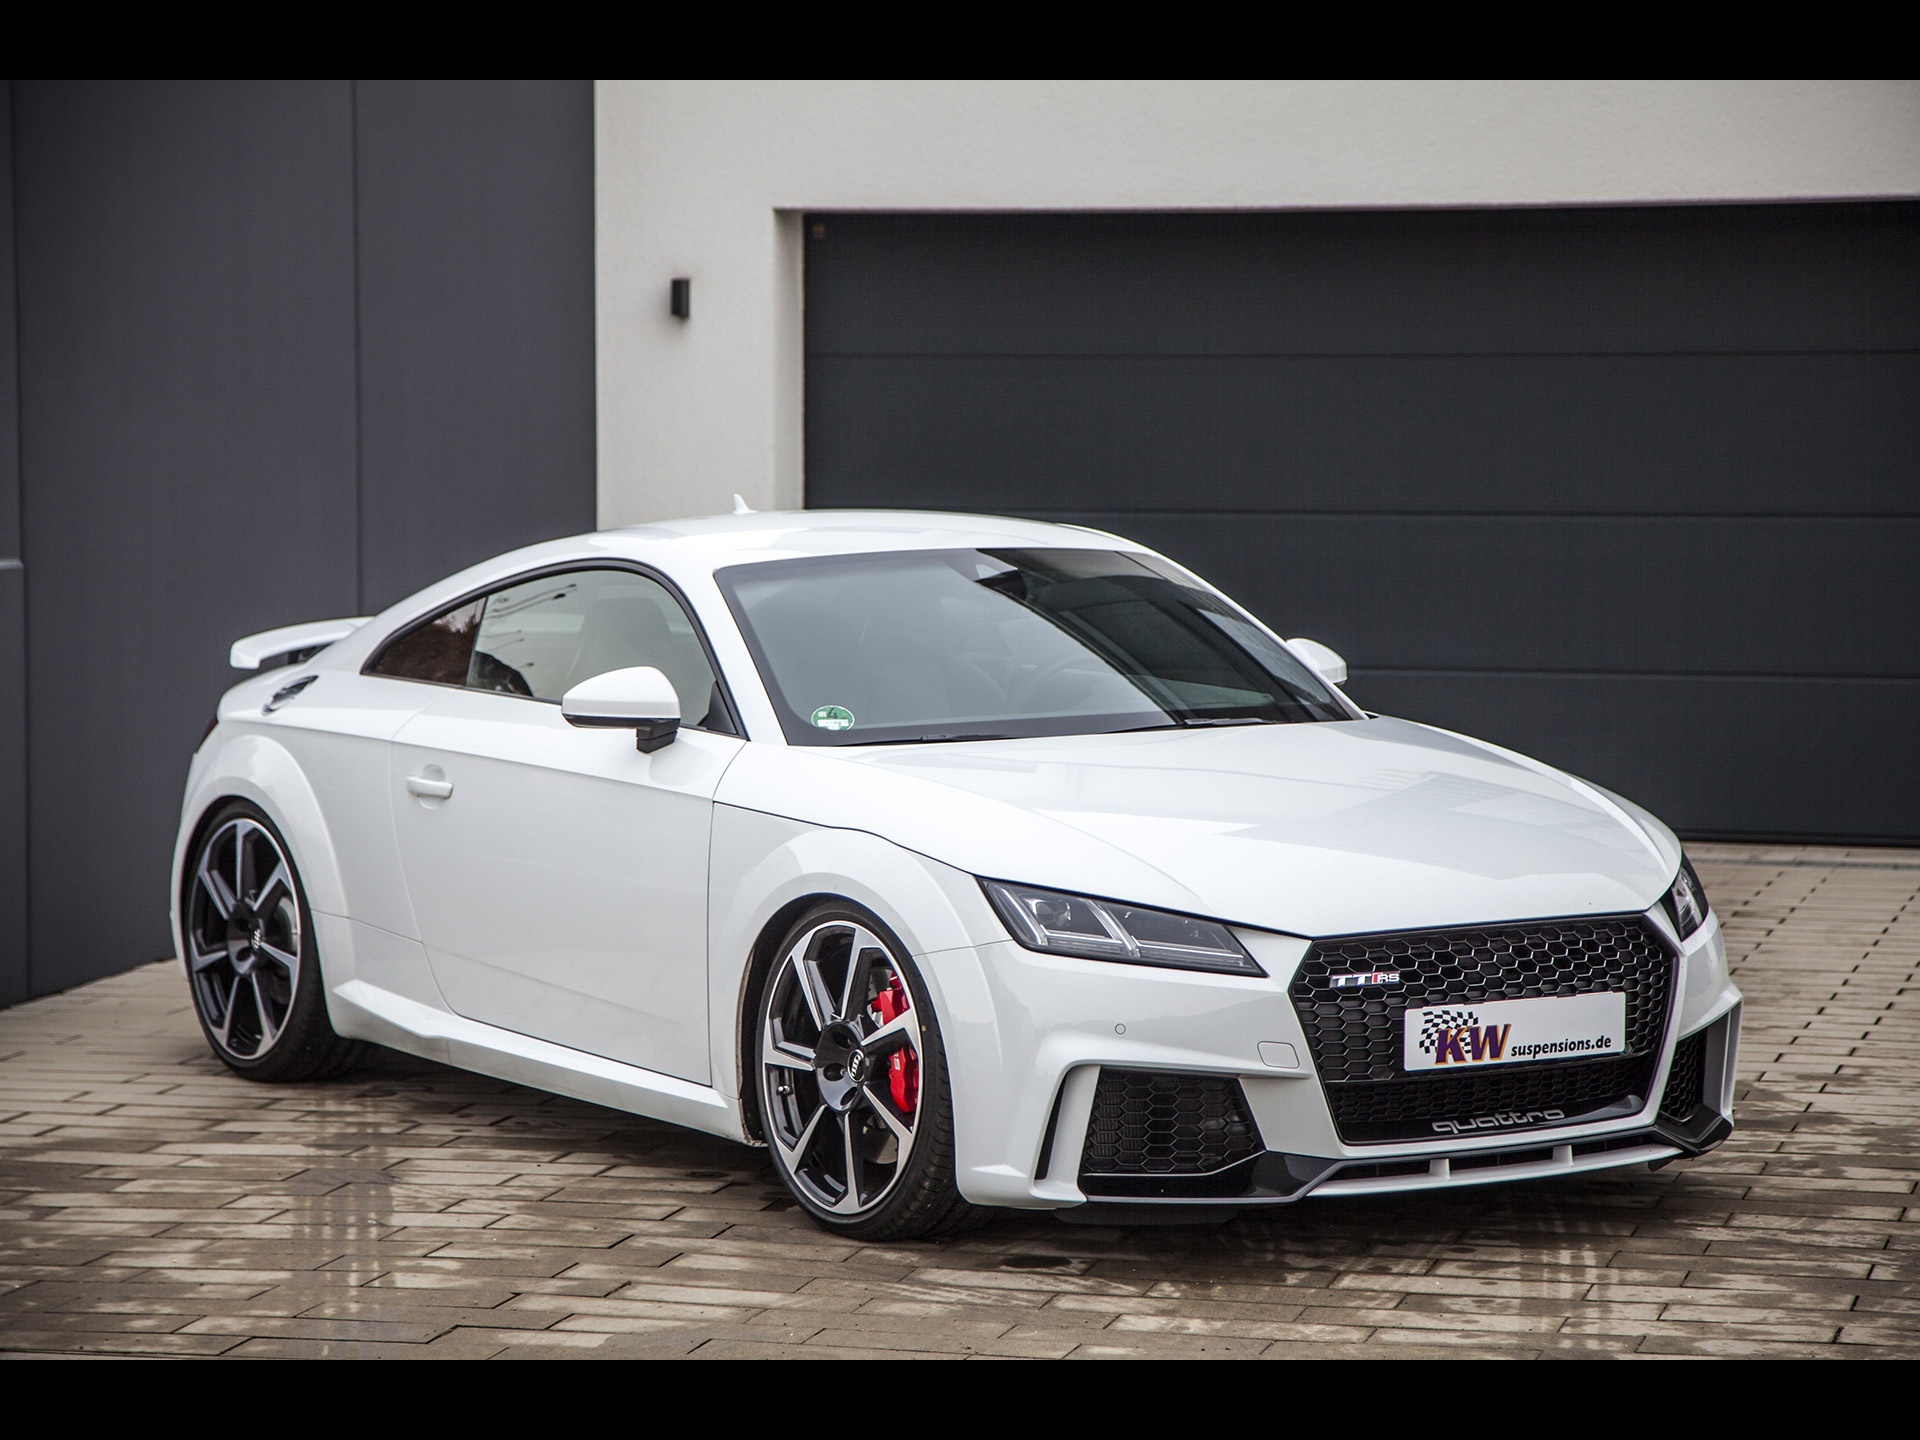 audi tt rs prix audi tt coup rs 2006 prix moniteur automobile audi tt rs 2016 5 cylindres et. Black Bedroom Furniture Sets. Home Design Ideas